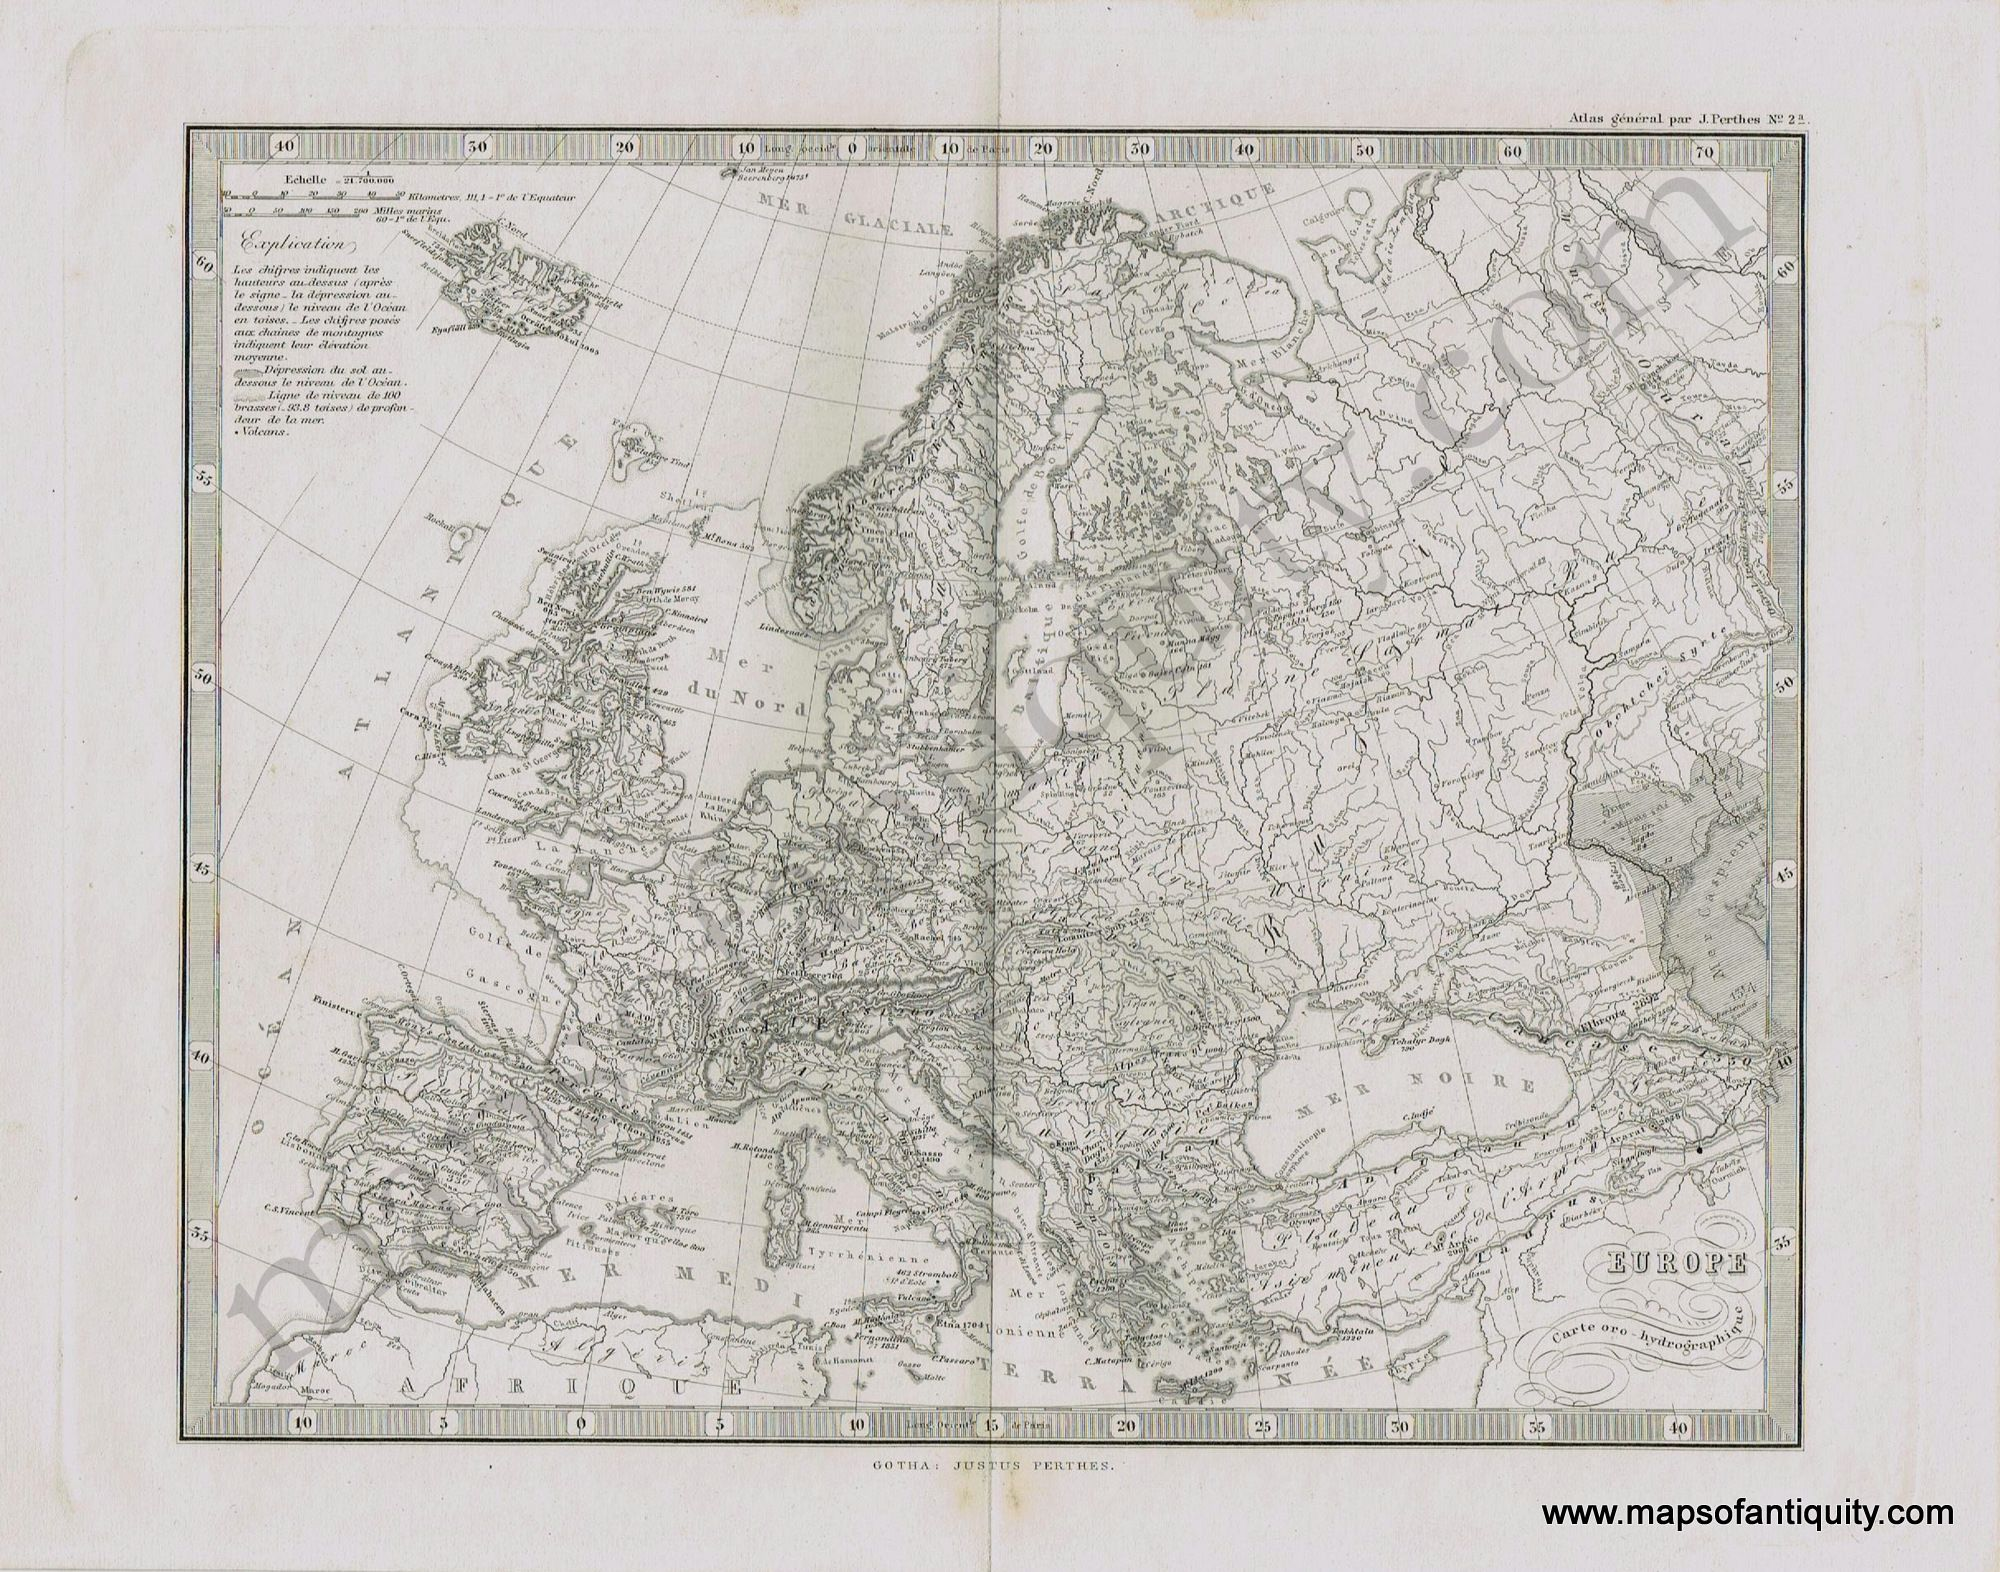 Carte Europe Maps.Europe Carte Oro Hydrographique Antique Maps And Charts